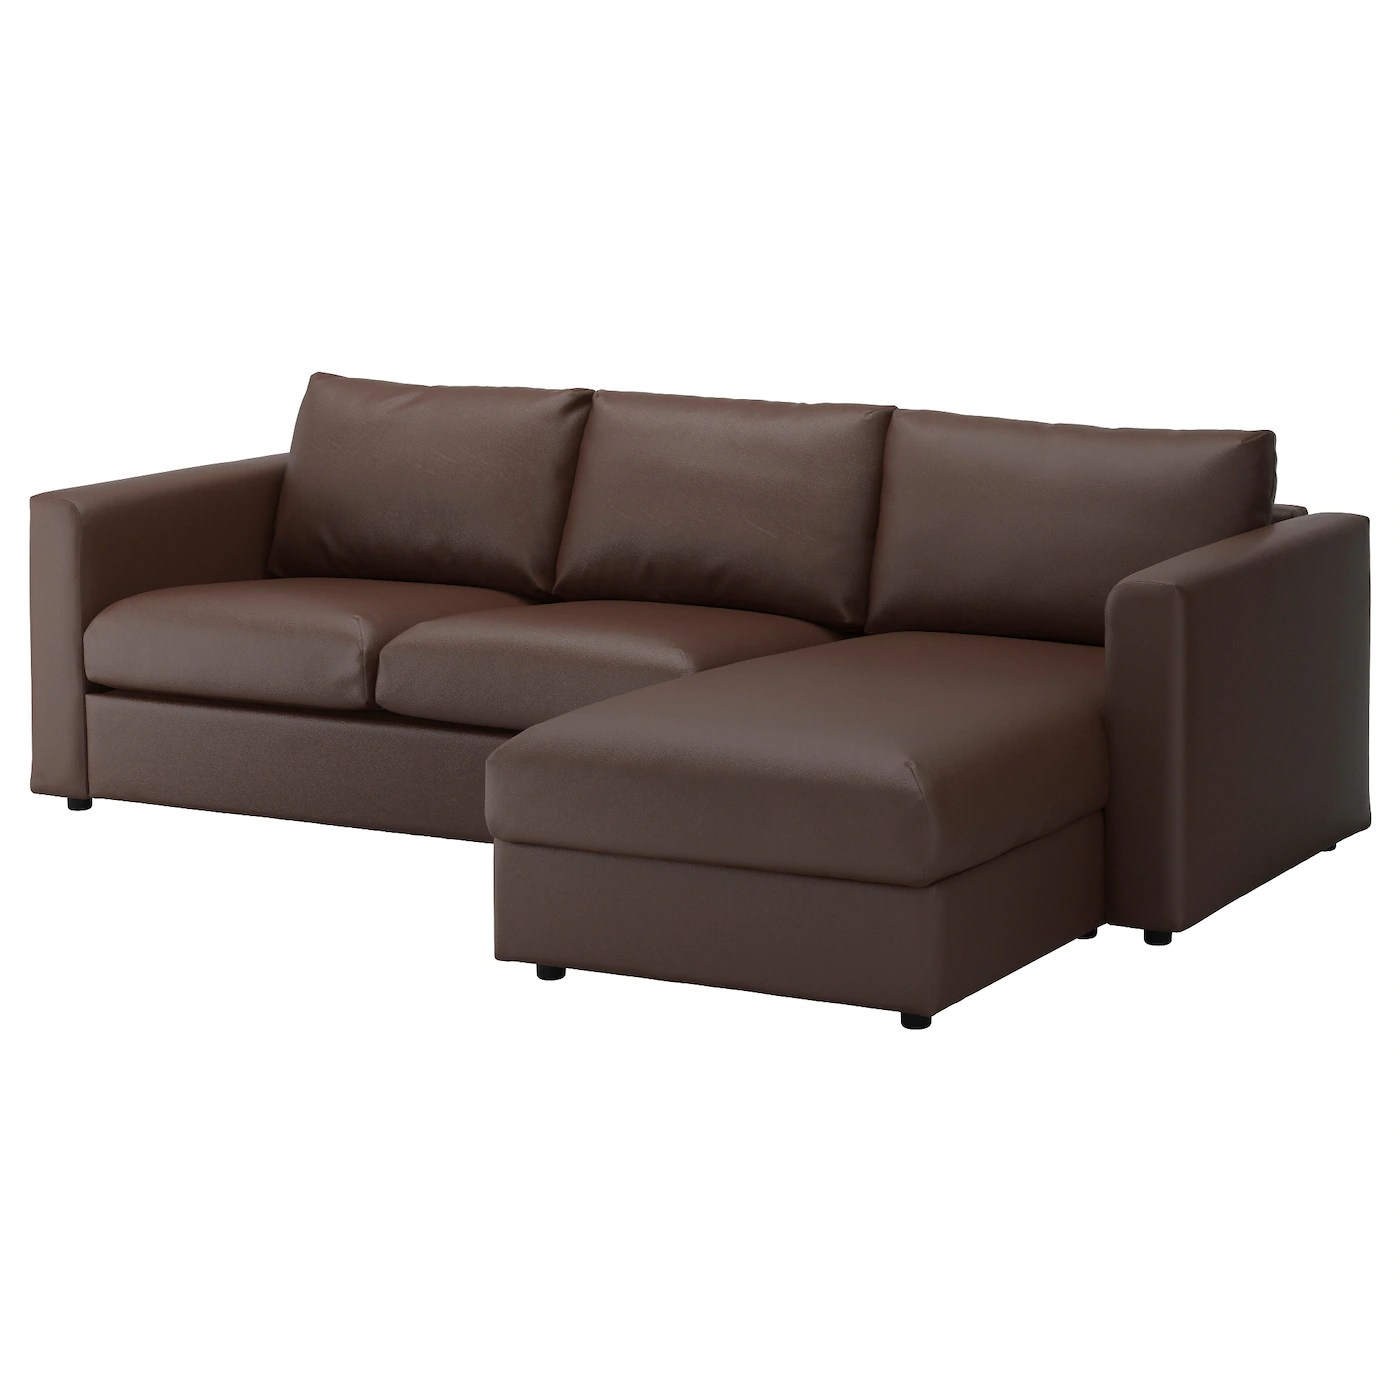 clean leather sofa with damp cloth waterproof protector dogs vimle 3-seat chaise longue/farsta dark brown - ikea